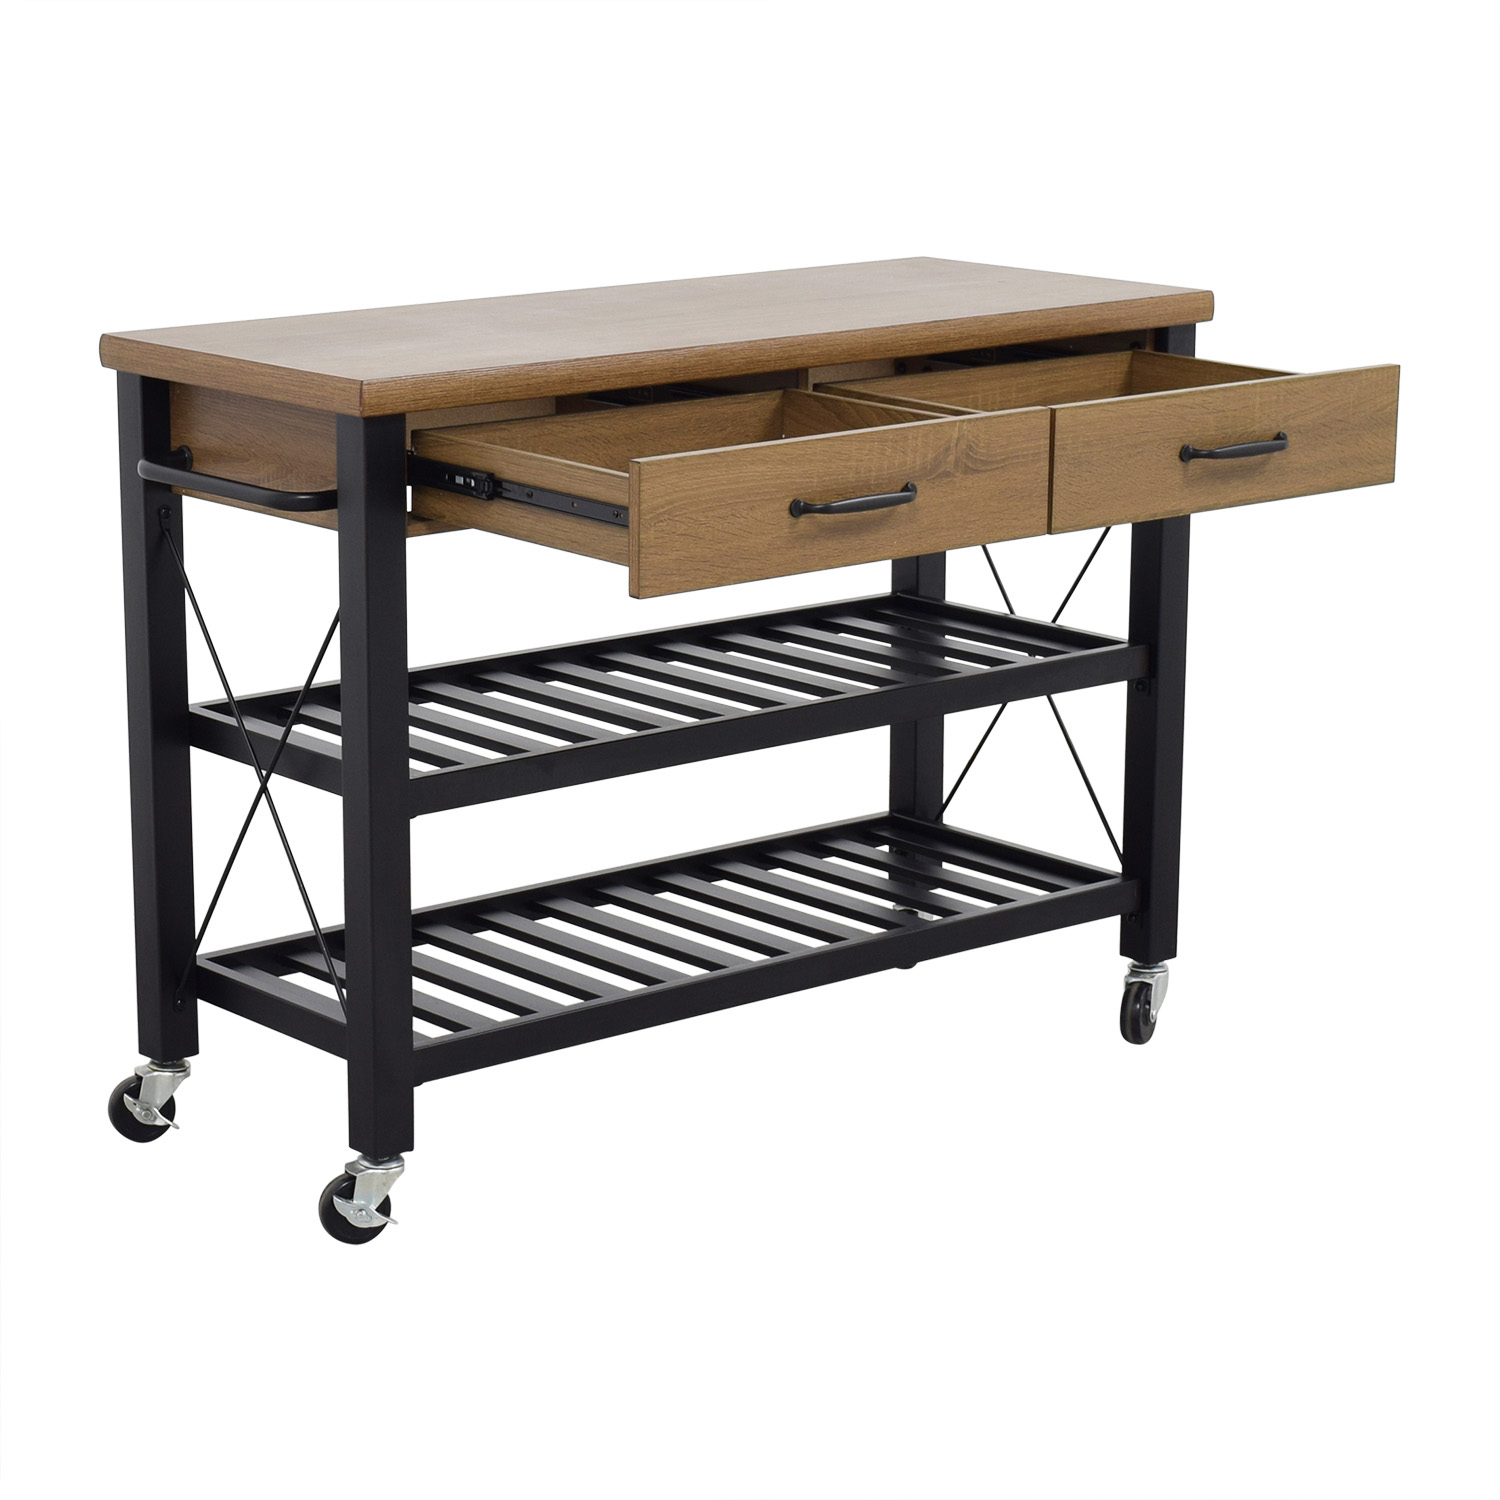 68 Off Walmart Walmart Kitchen Island Cart On Casters